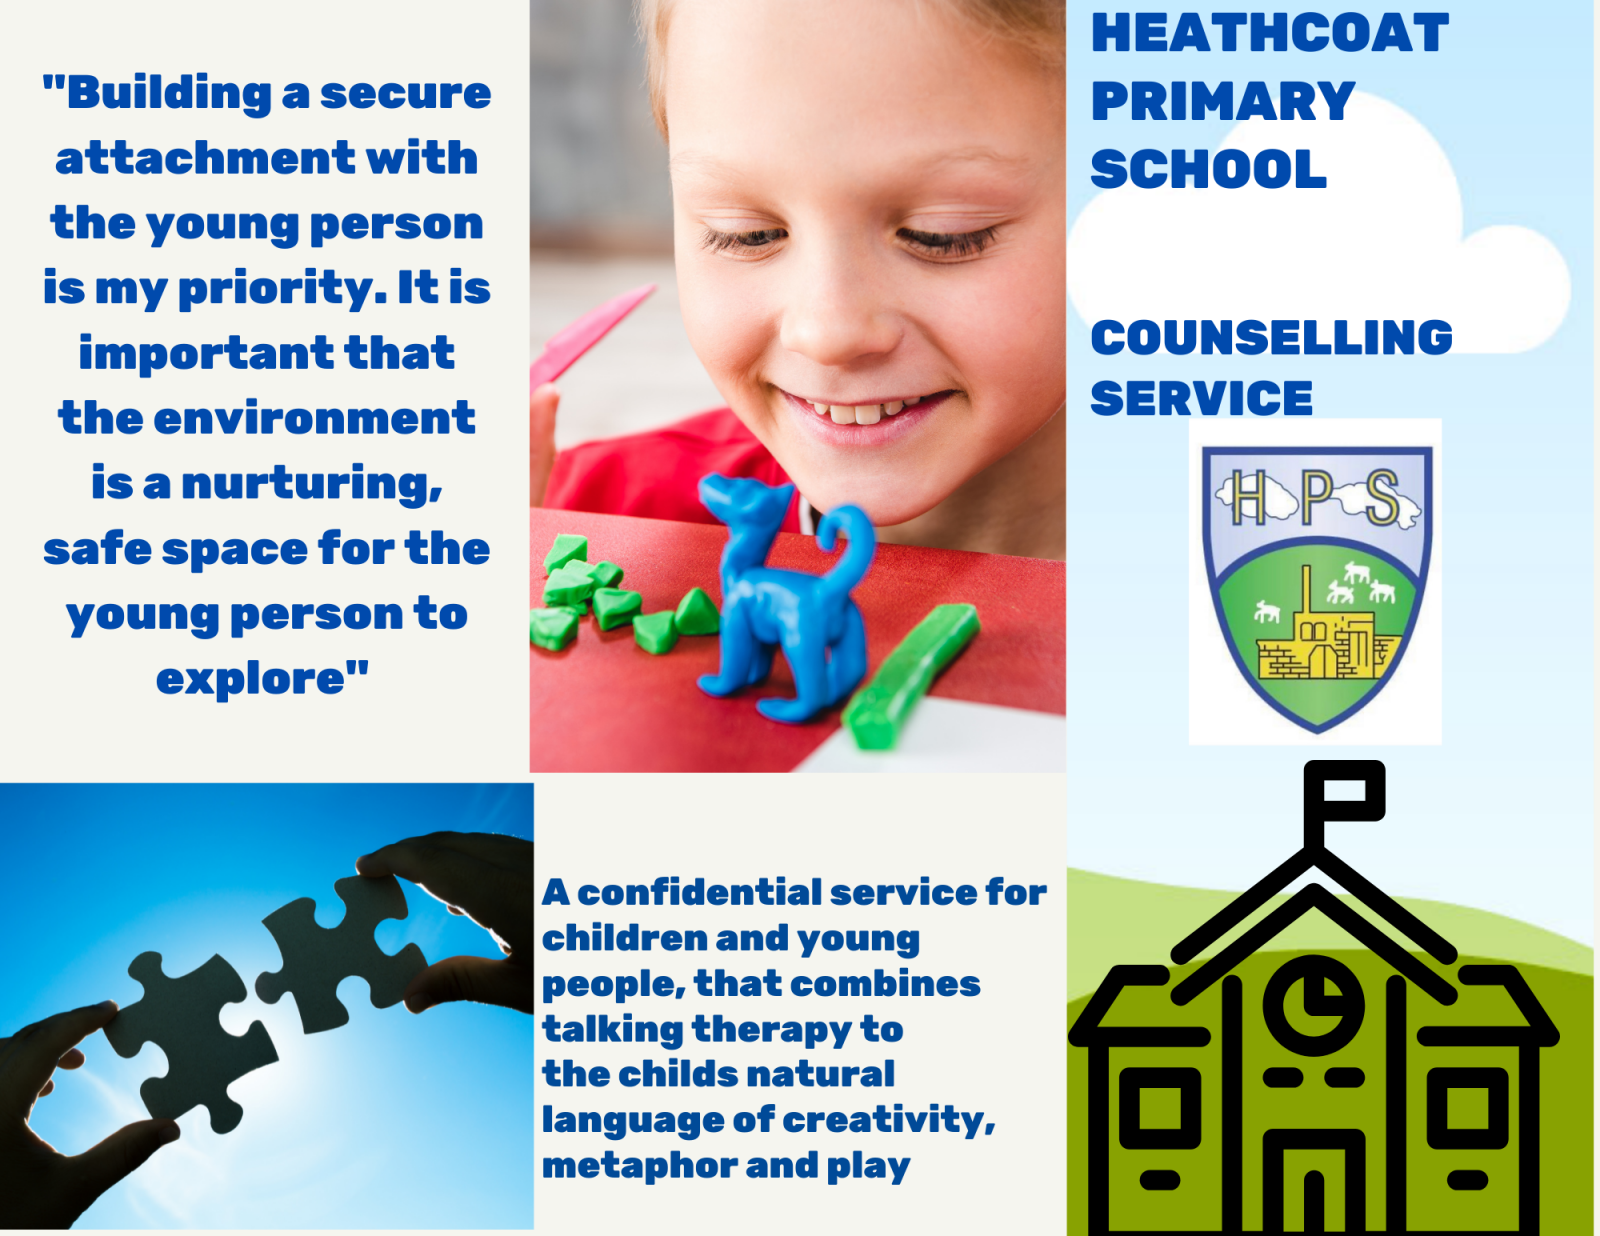 HPS Counselling service